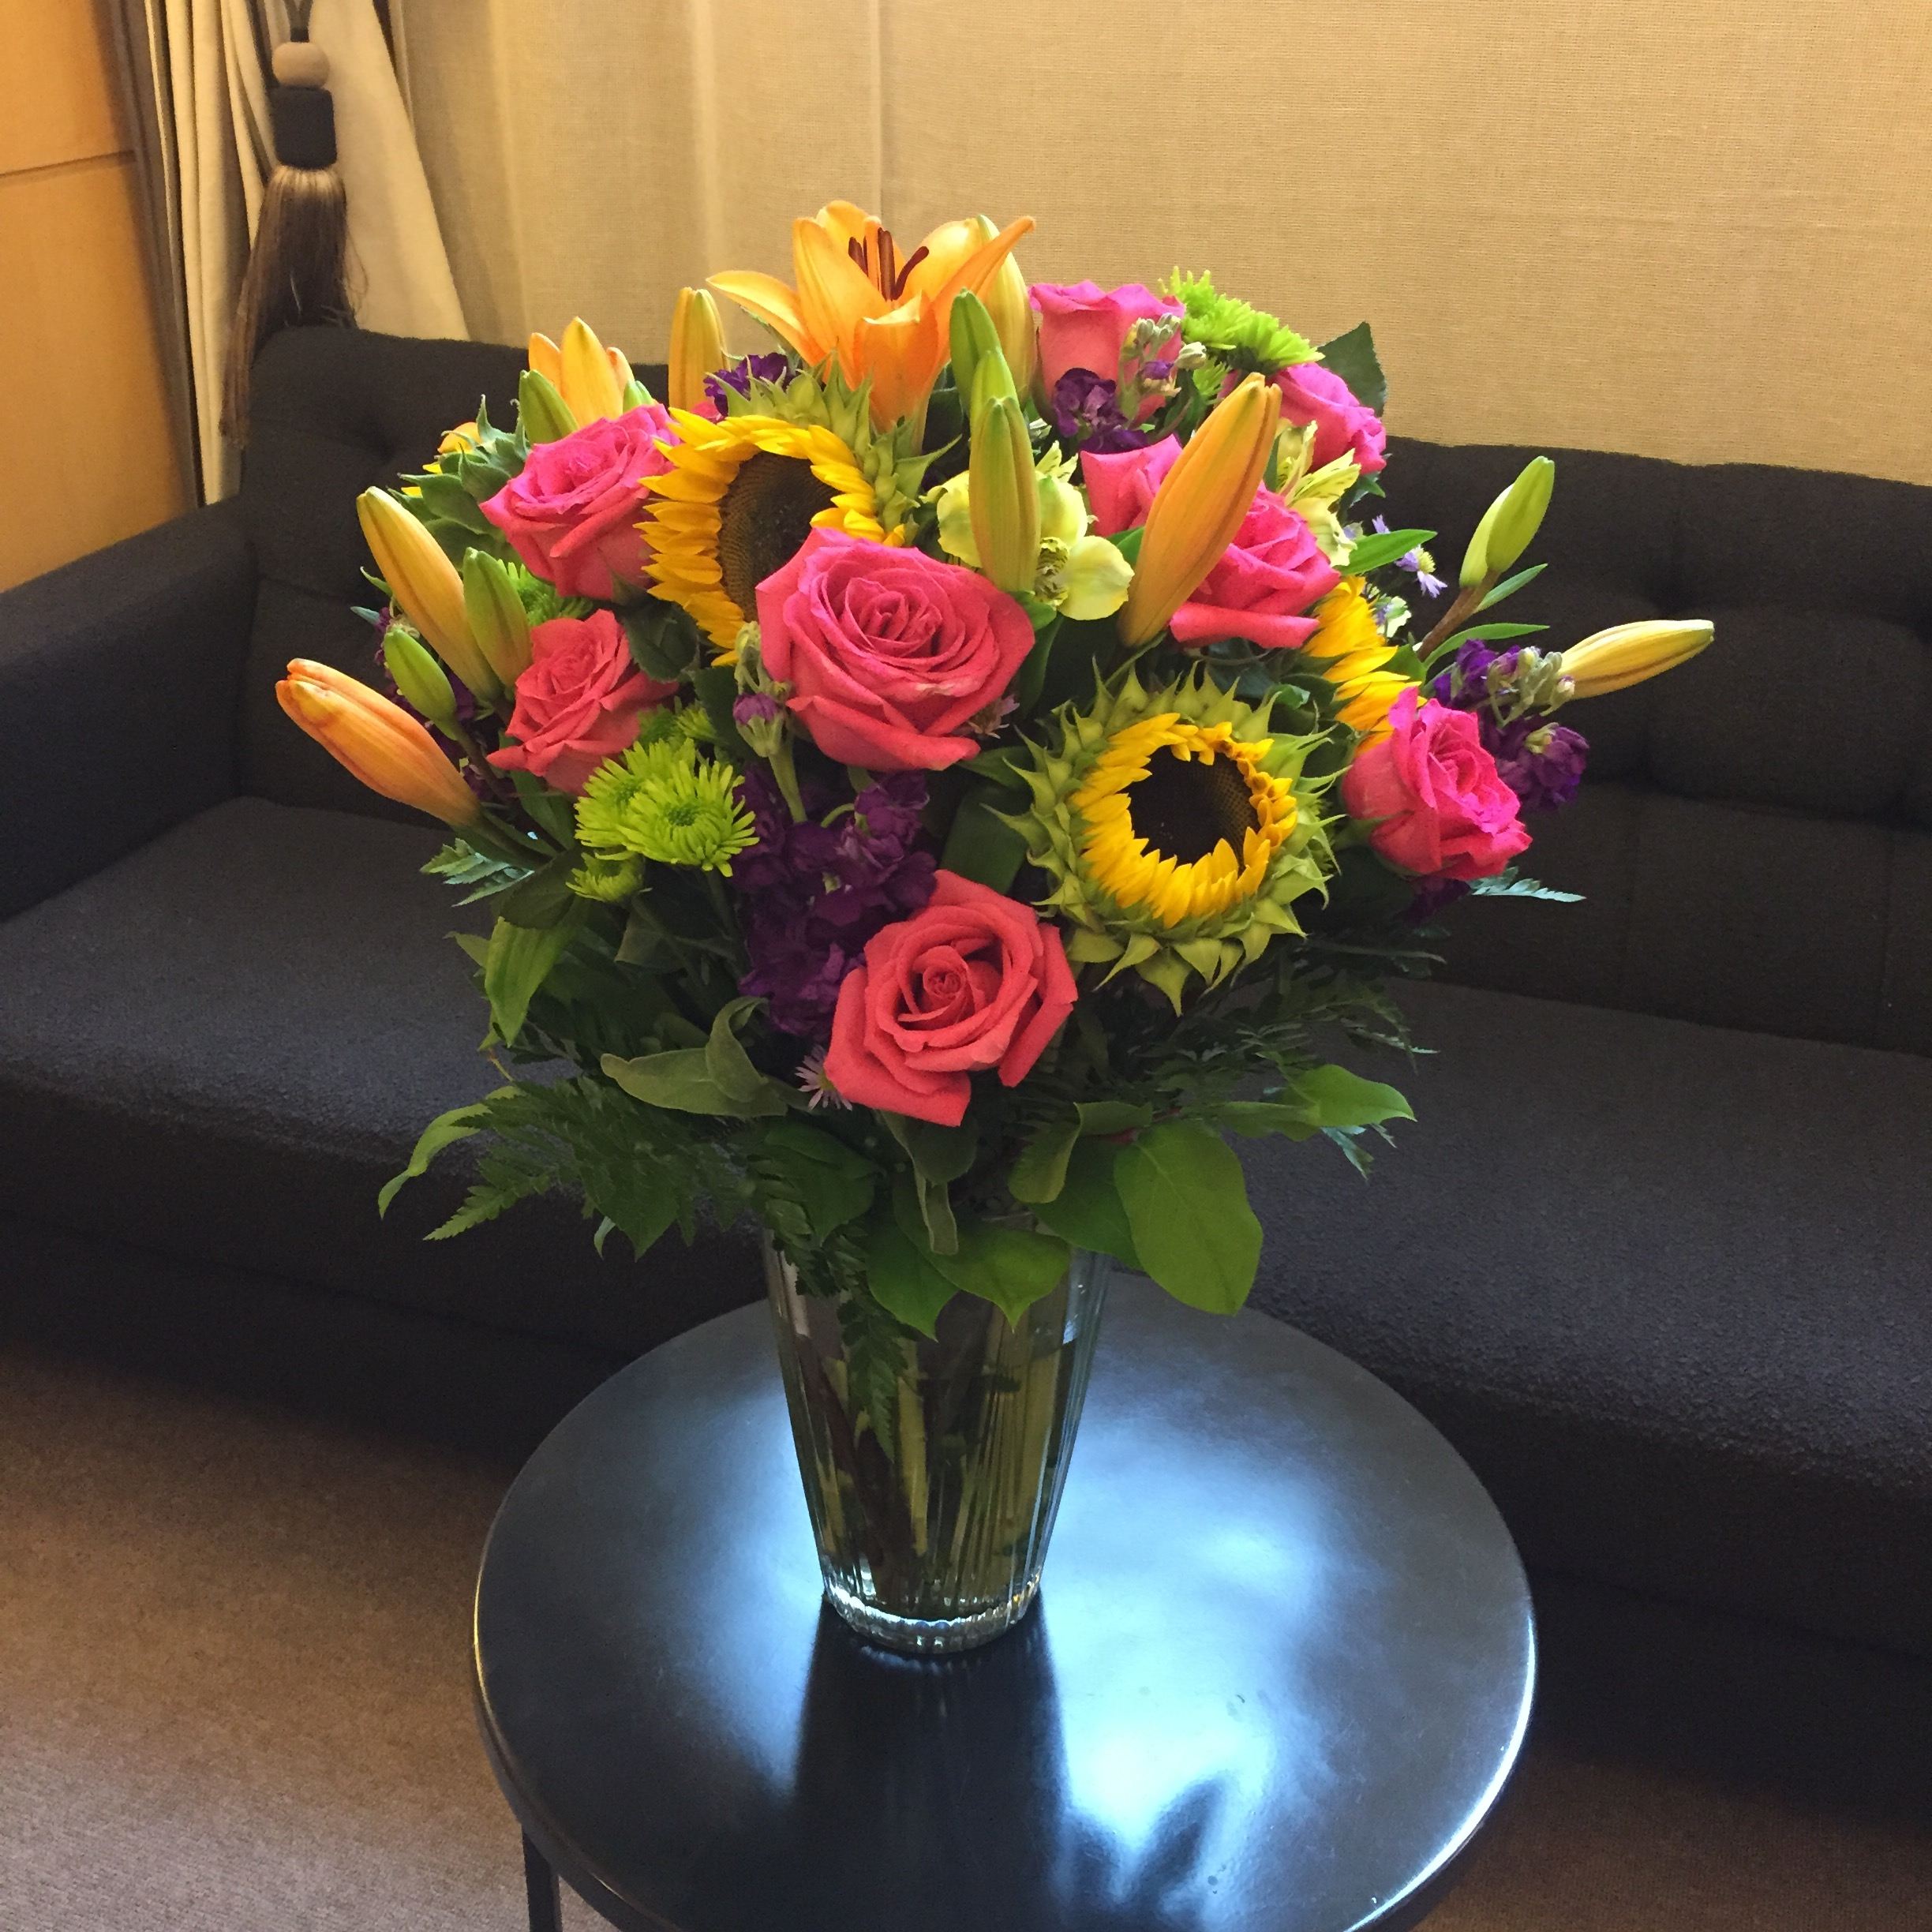 Flowers from a breast lift and tummy tuck patient